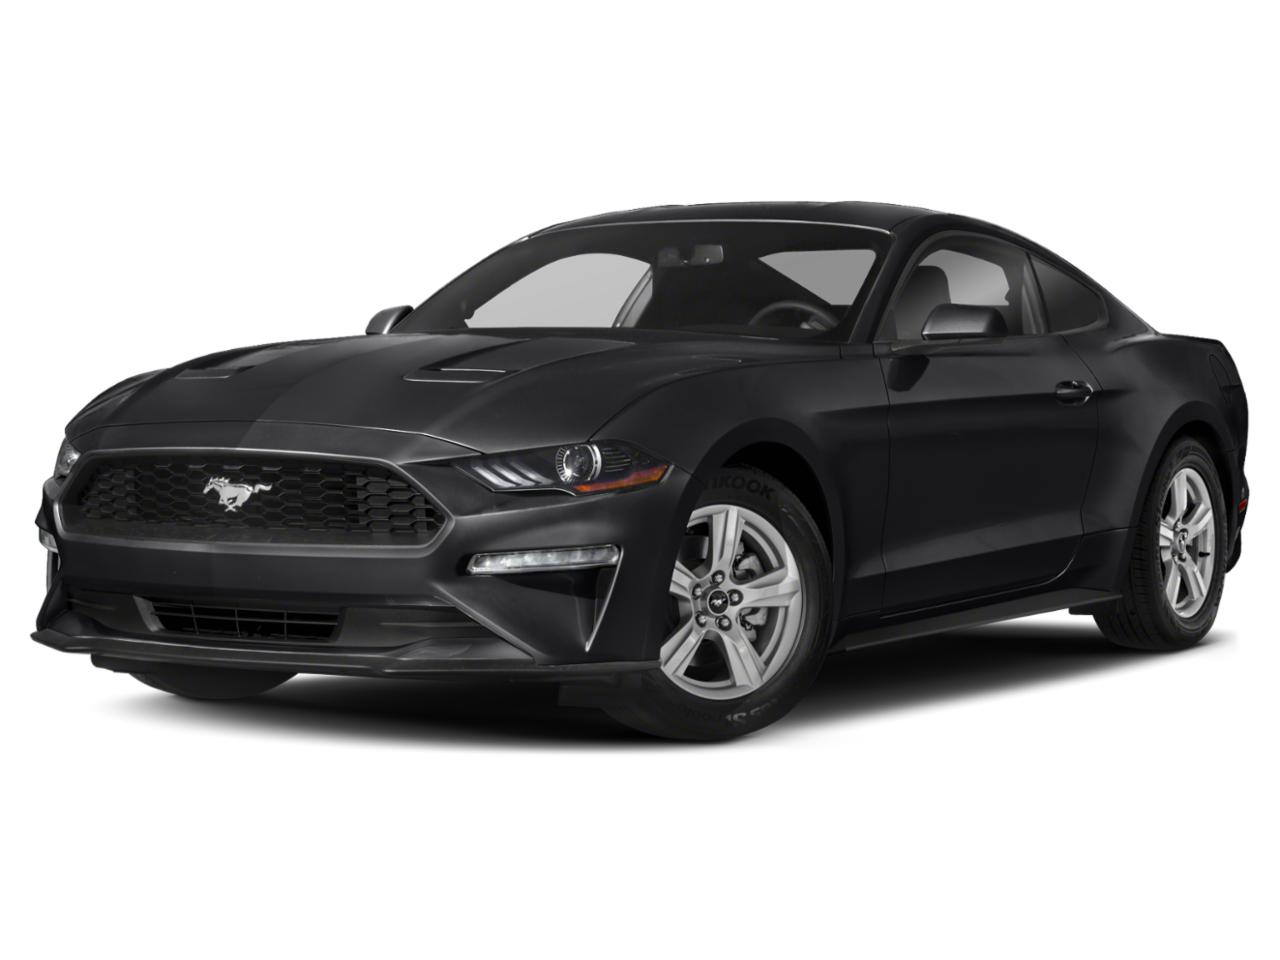 2018 Ford Mustang Vehicle Photo in Grapevine, TX 76051